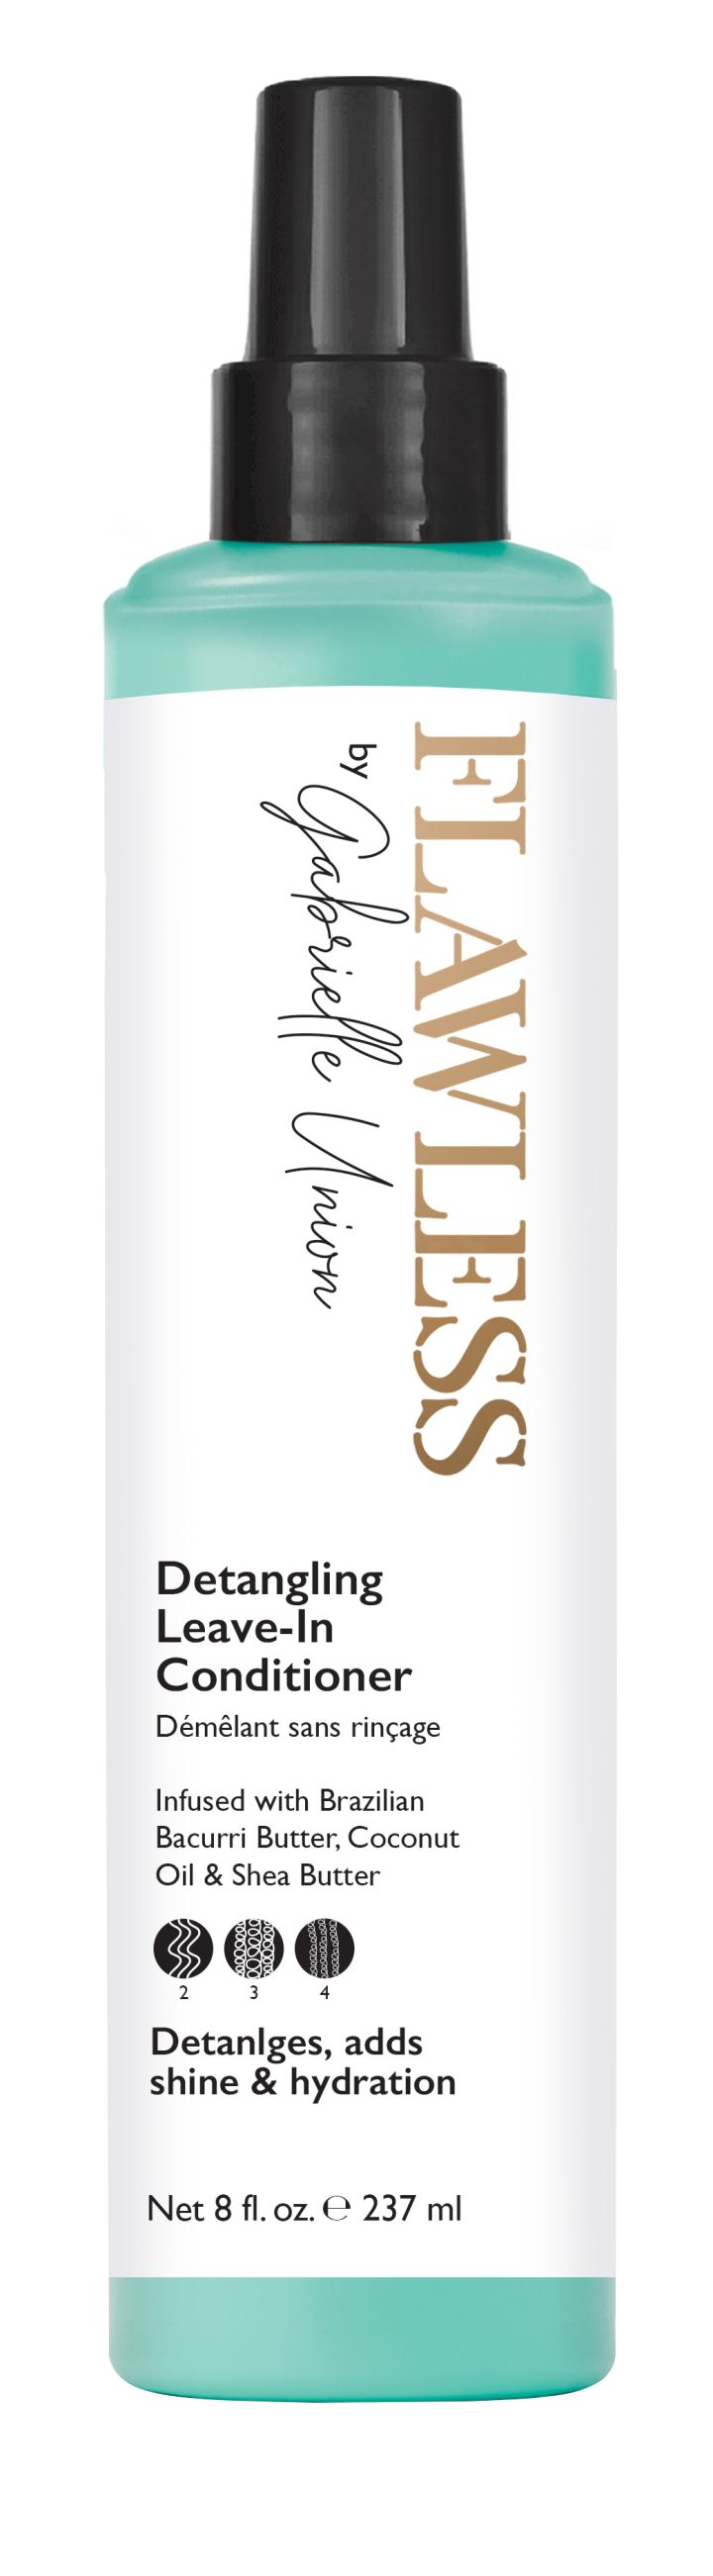 Flawless by Gabrielle Union Detangling Leave-In Conditioner